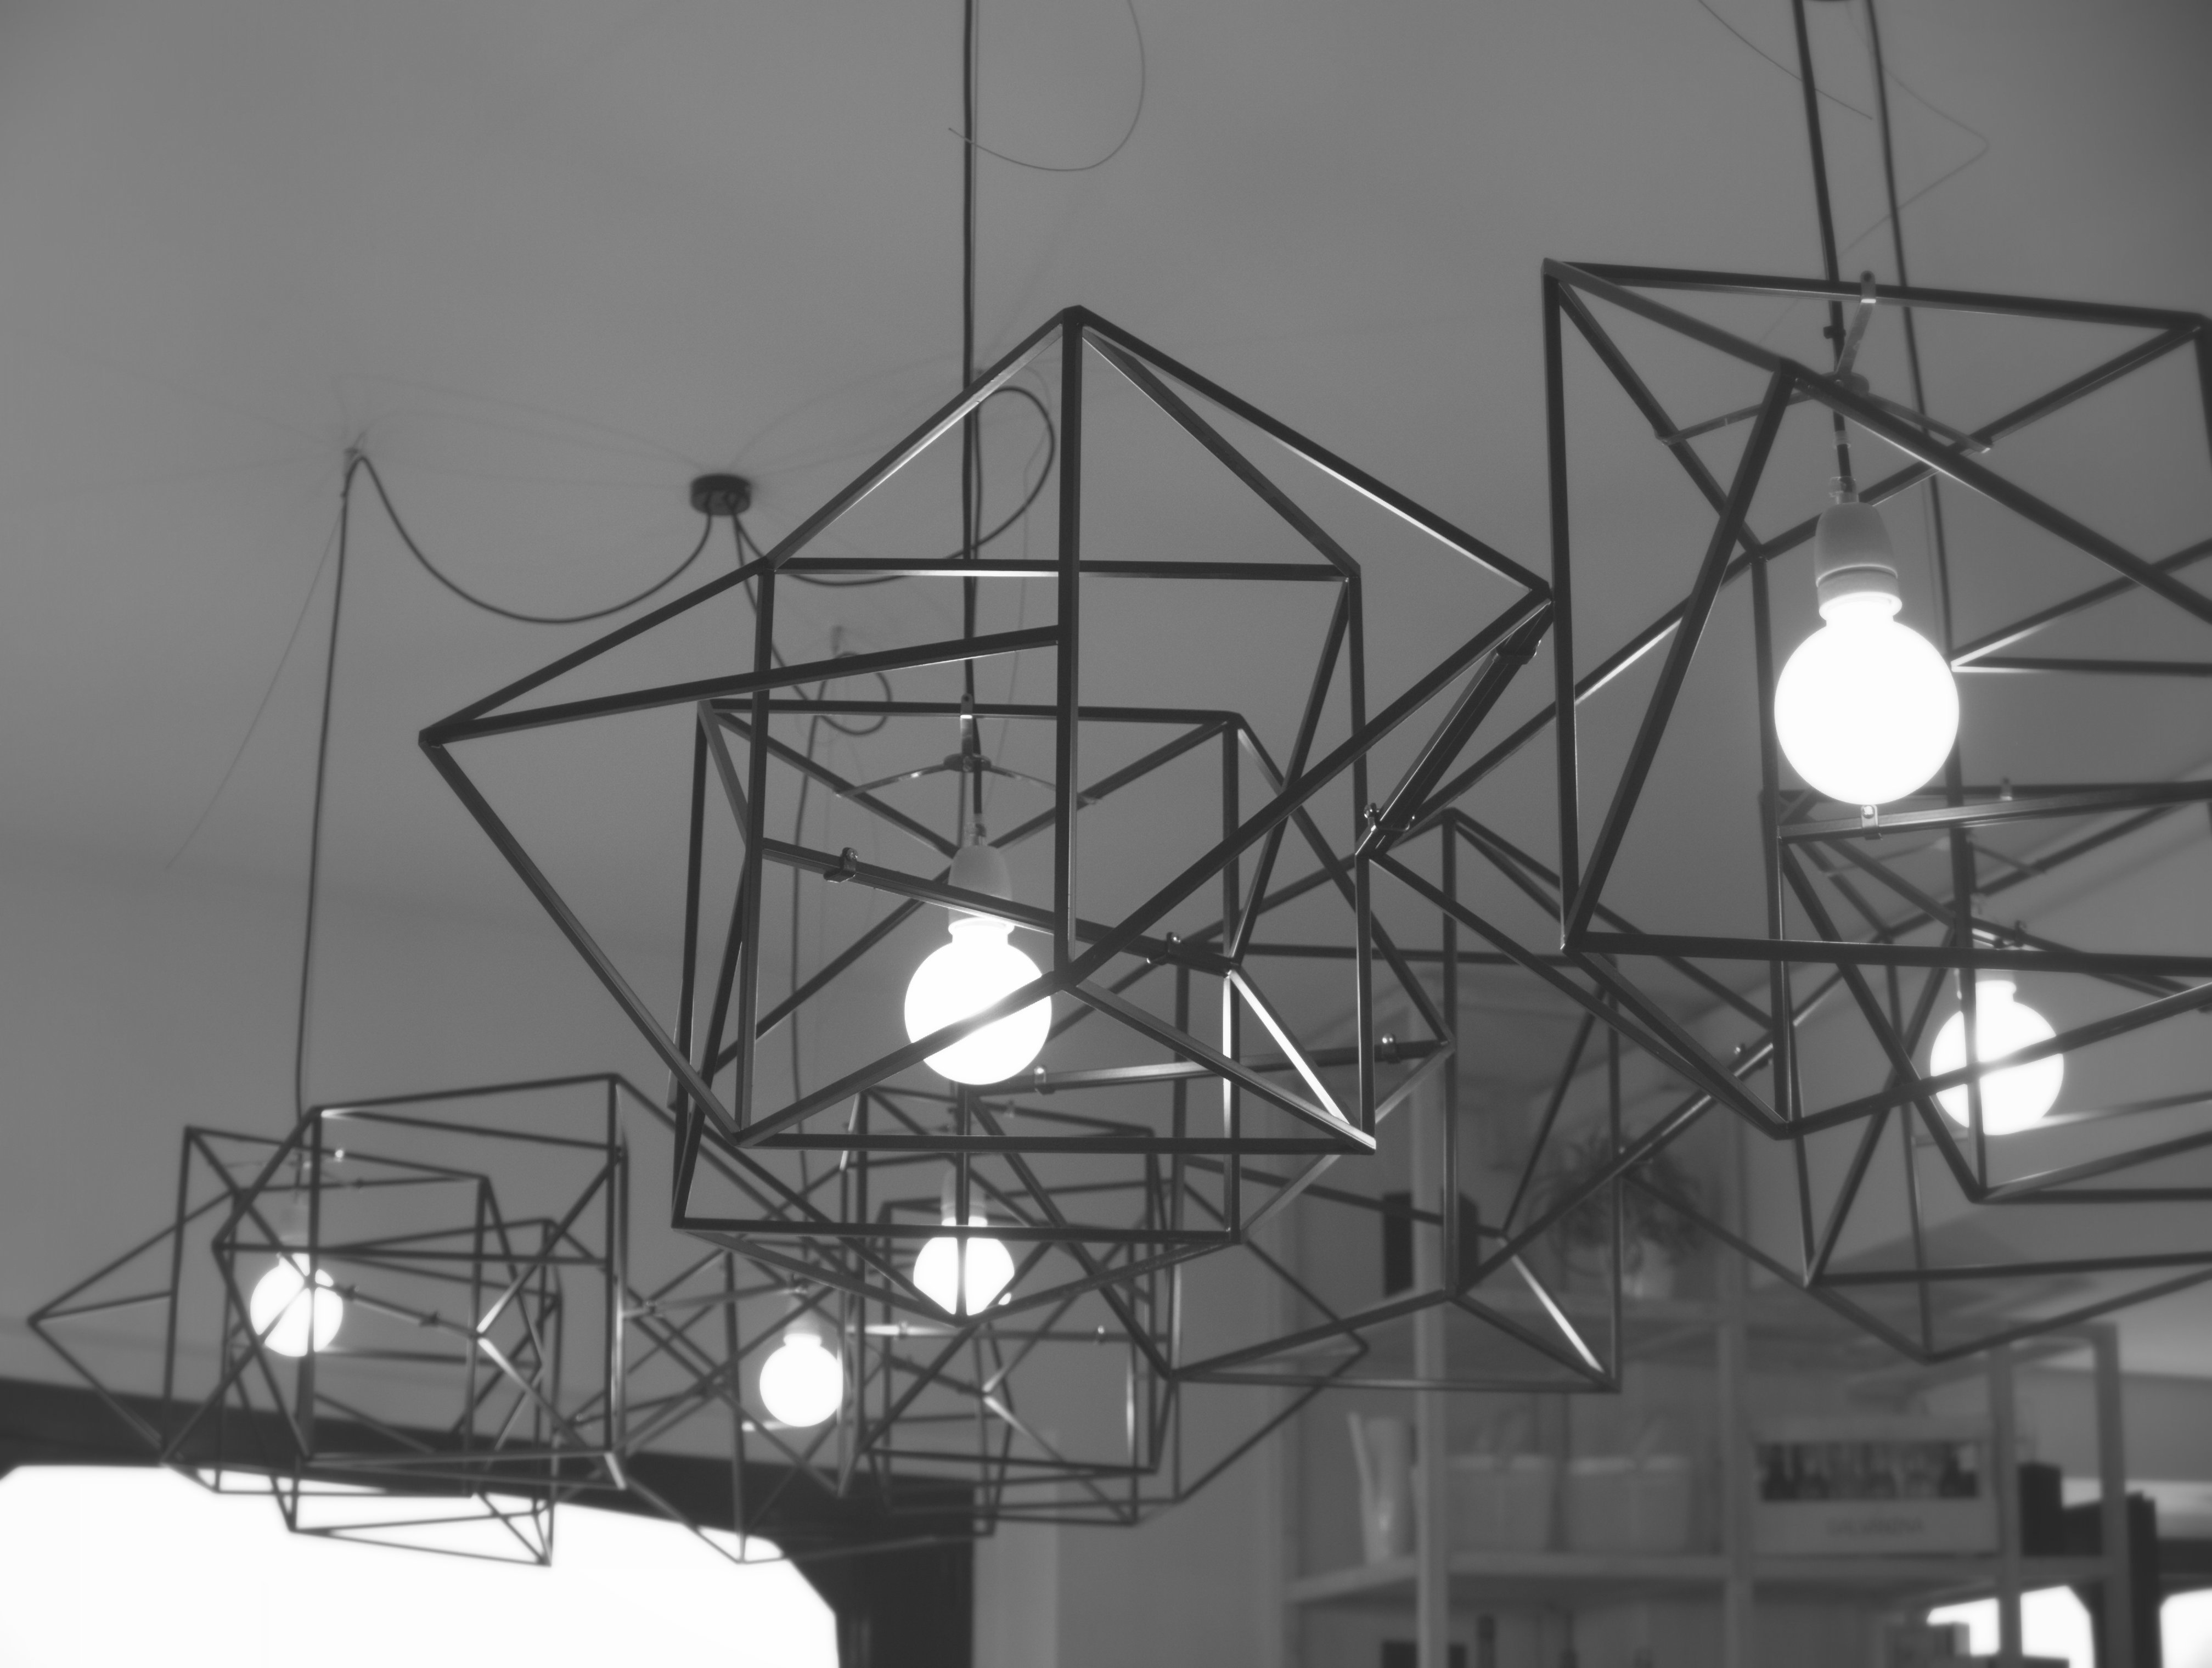 divina proportione lamp black with light on with geometrical forms and shadows in a room bar